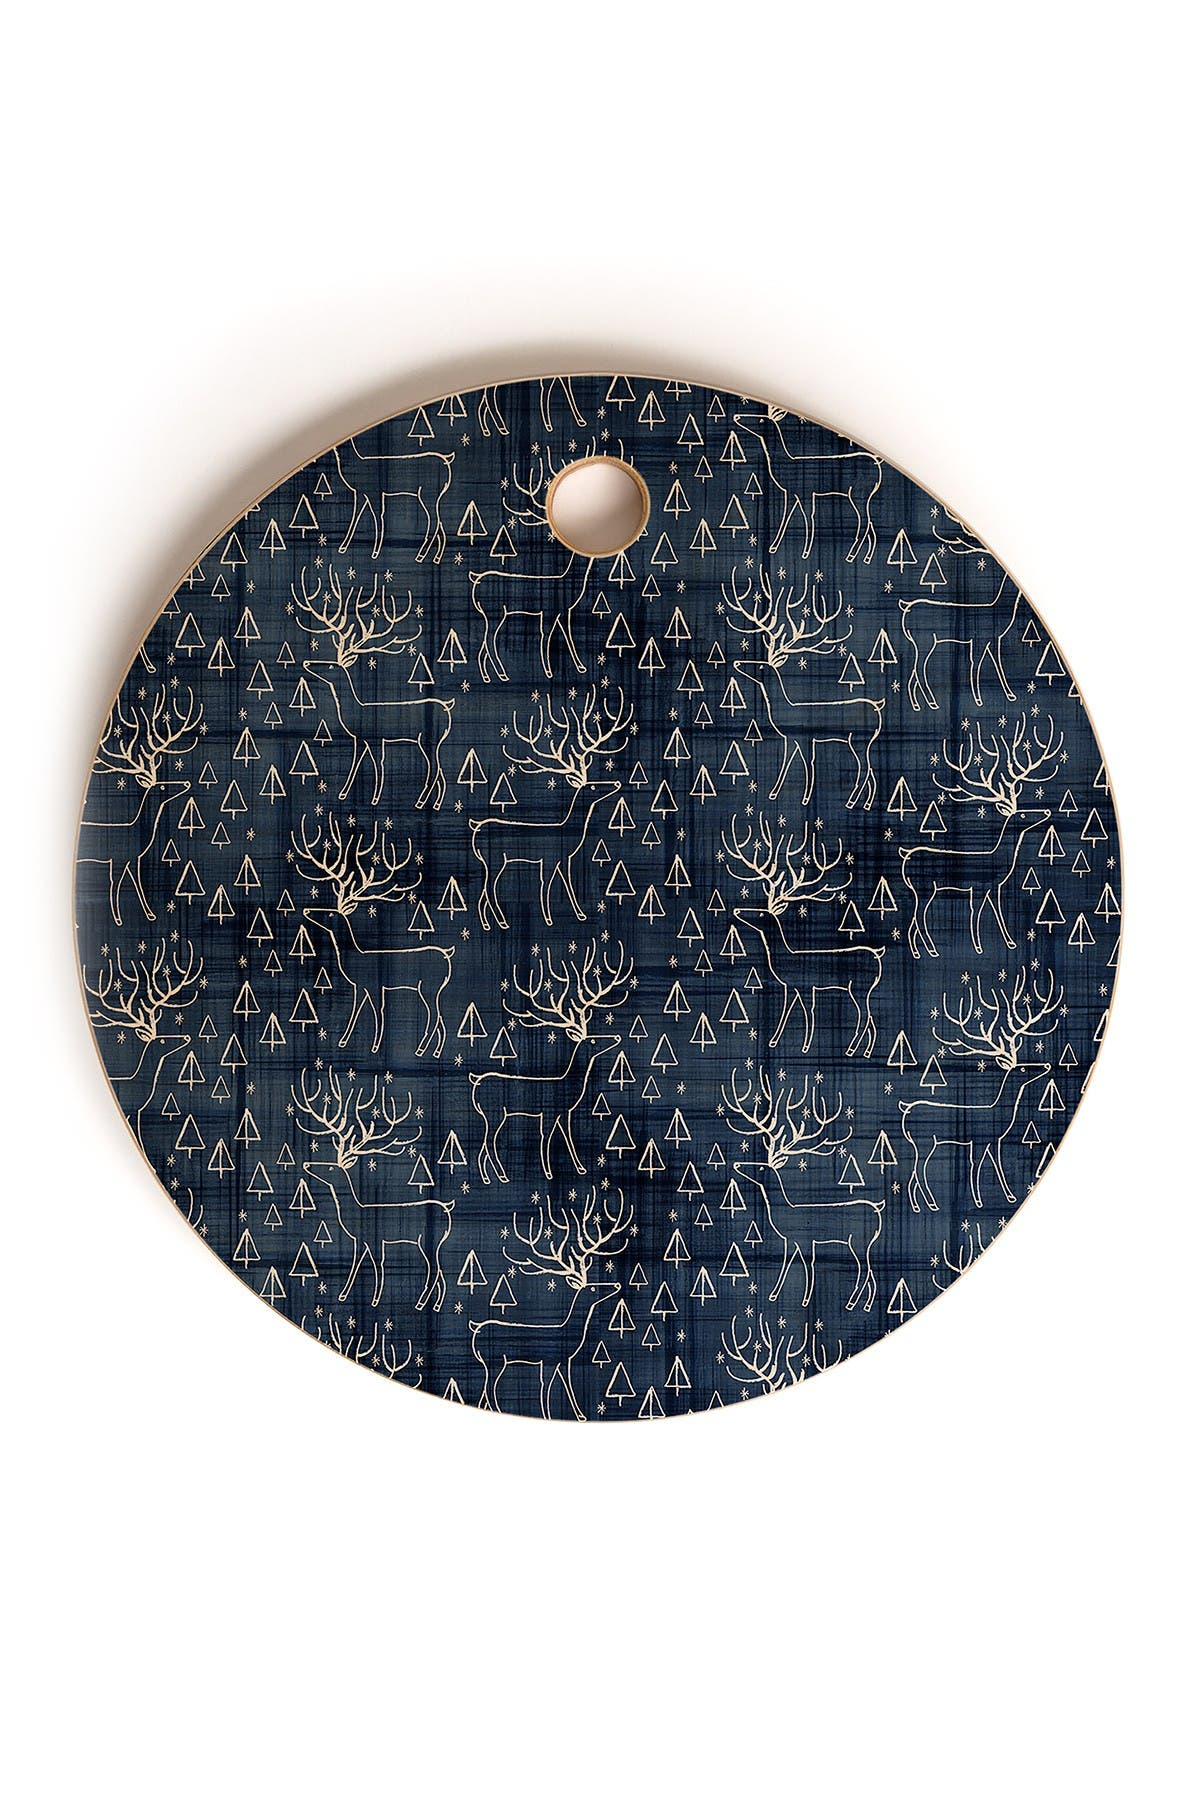 Image of Deny Designs Zoe Wodarz Indigo Deer Round Cutting Board